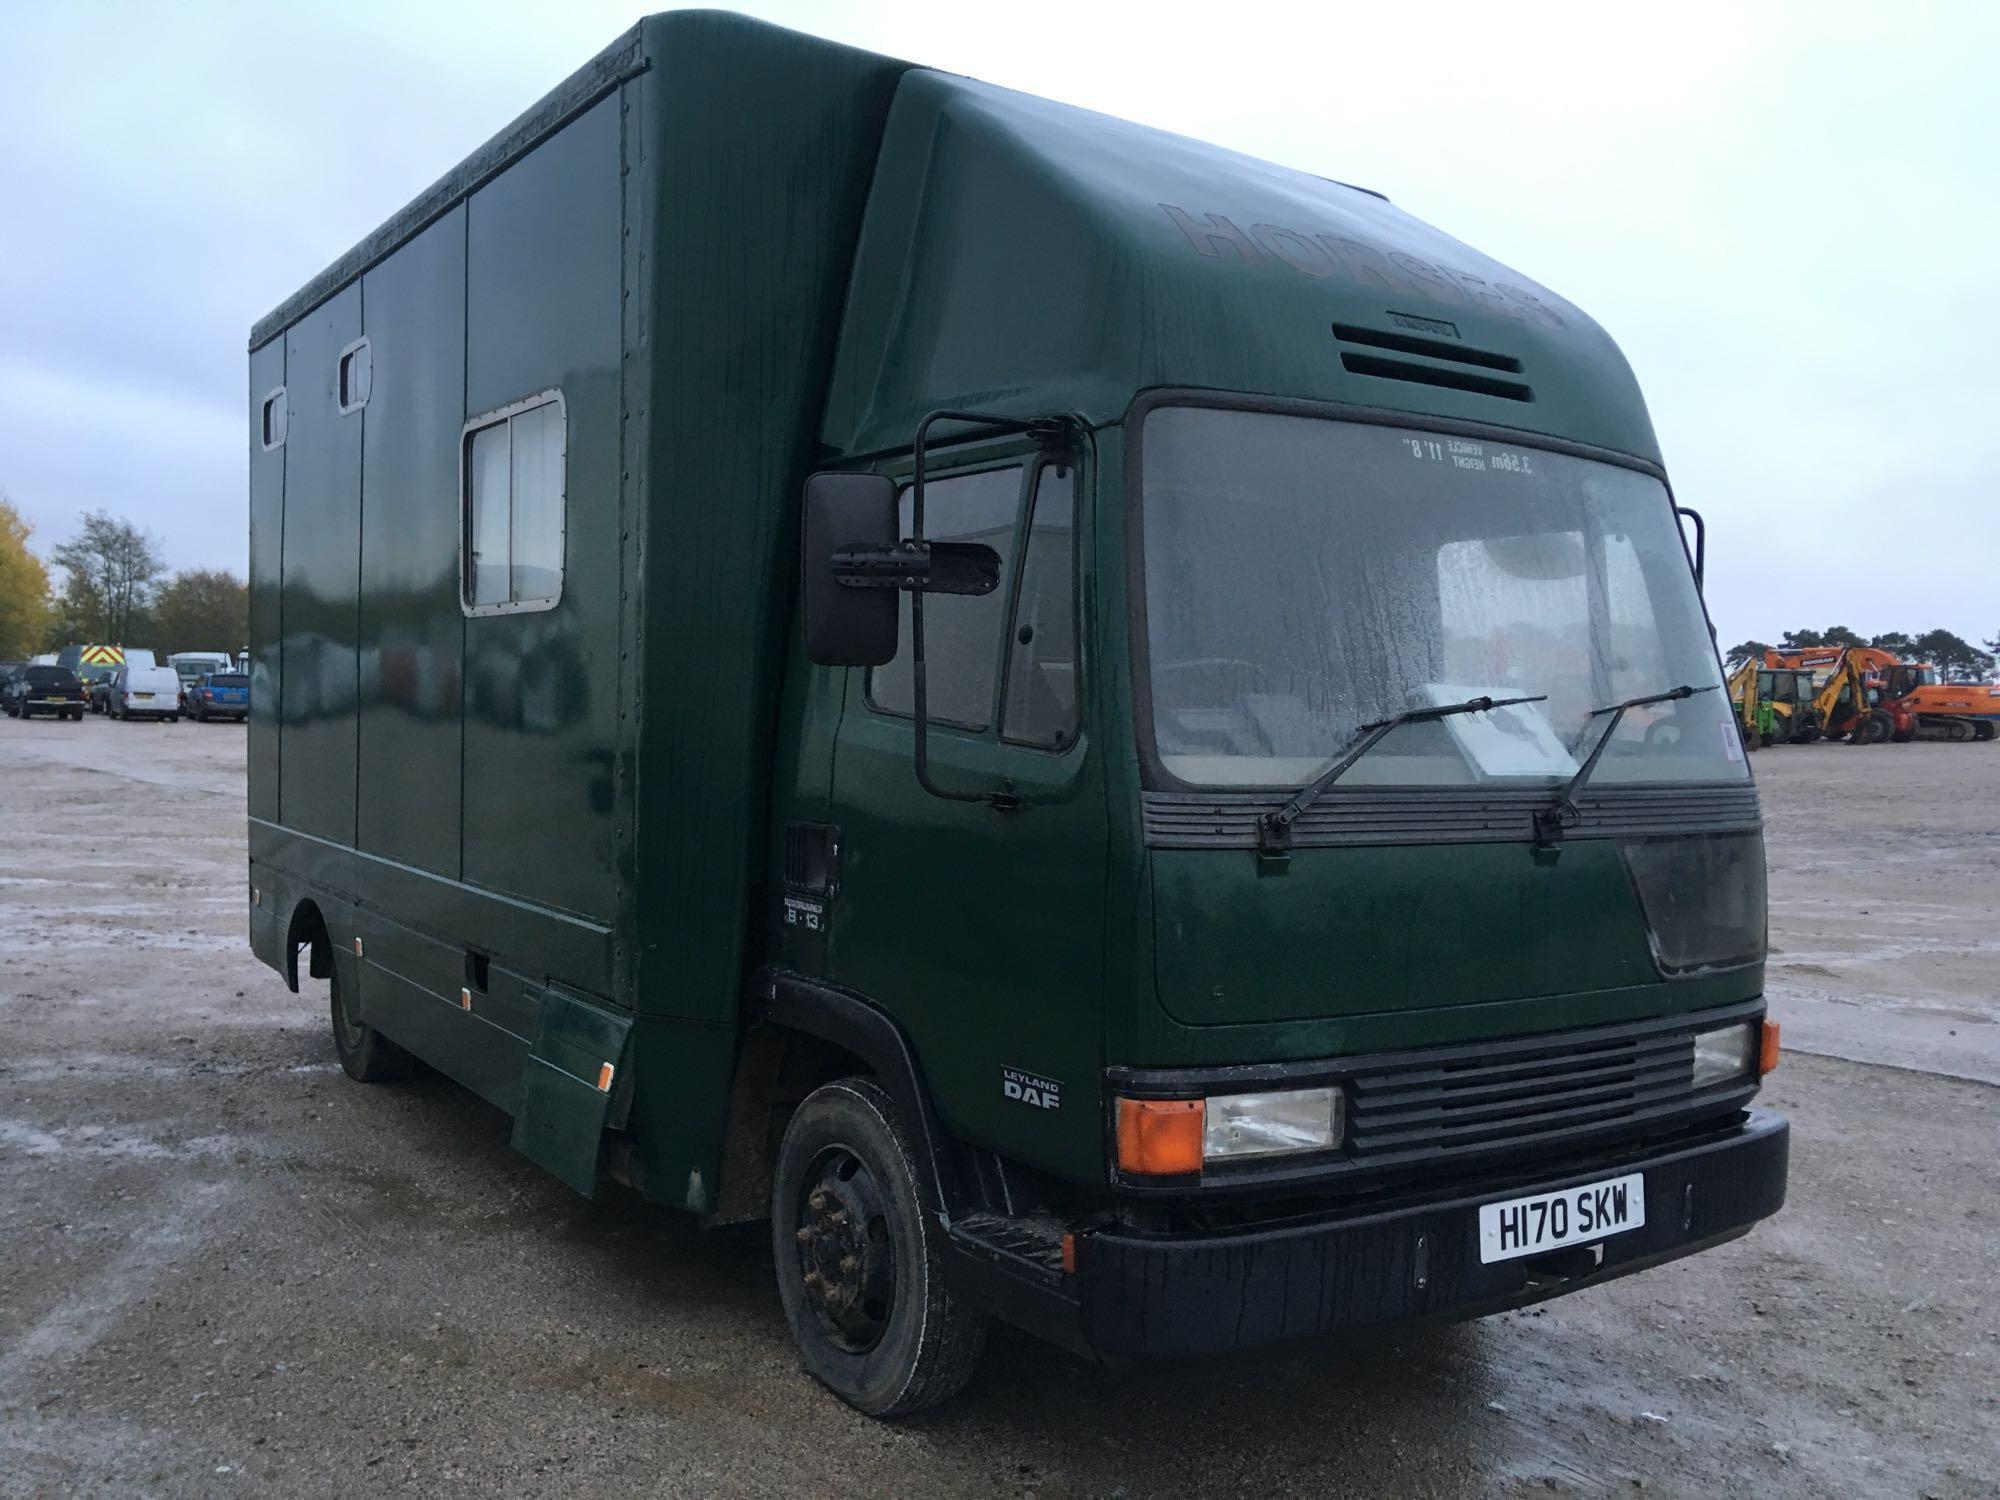 Lot 4025 - Leyland Roadrunner 8.13 - 0cc 2 Door Truck